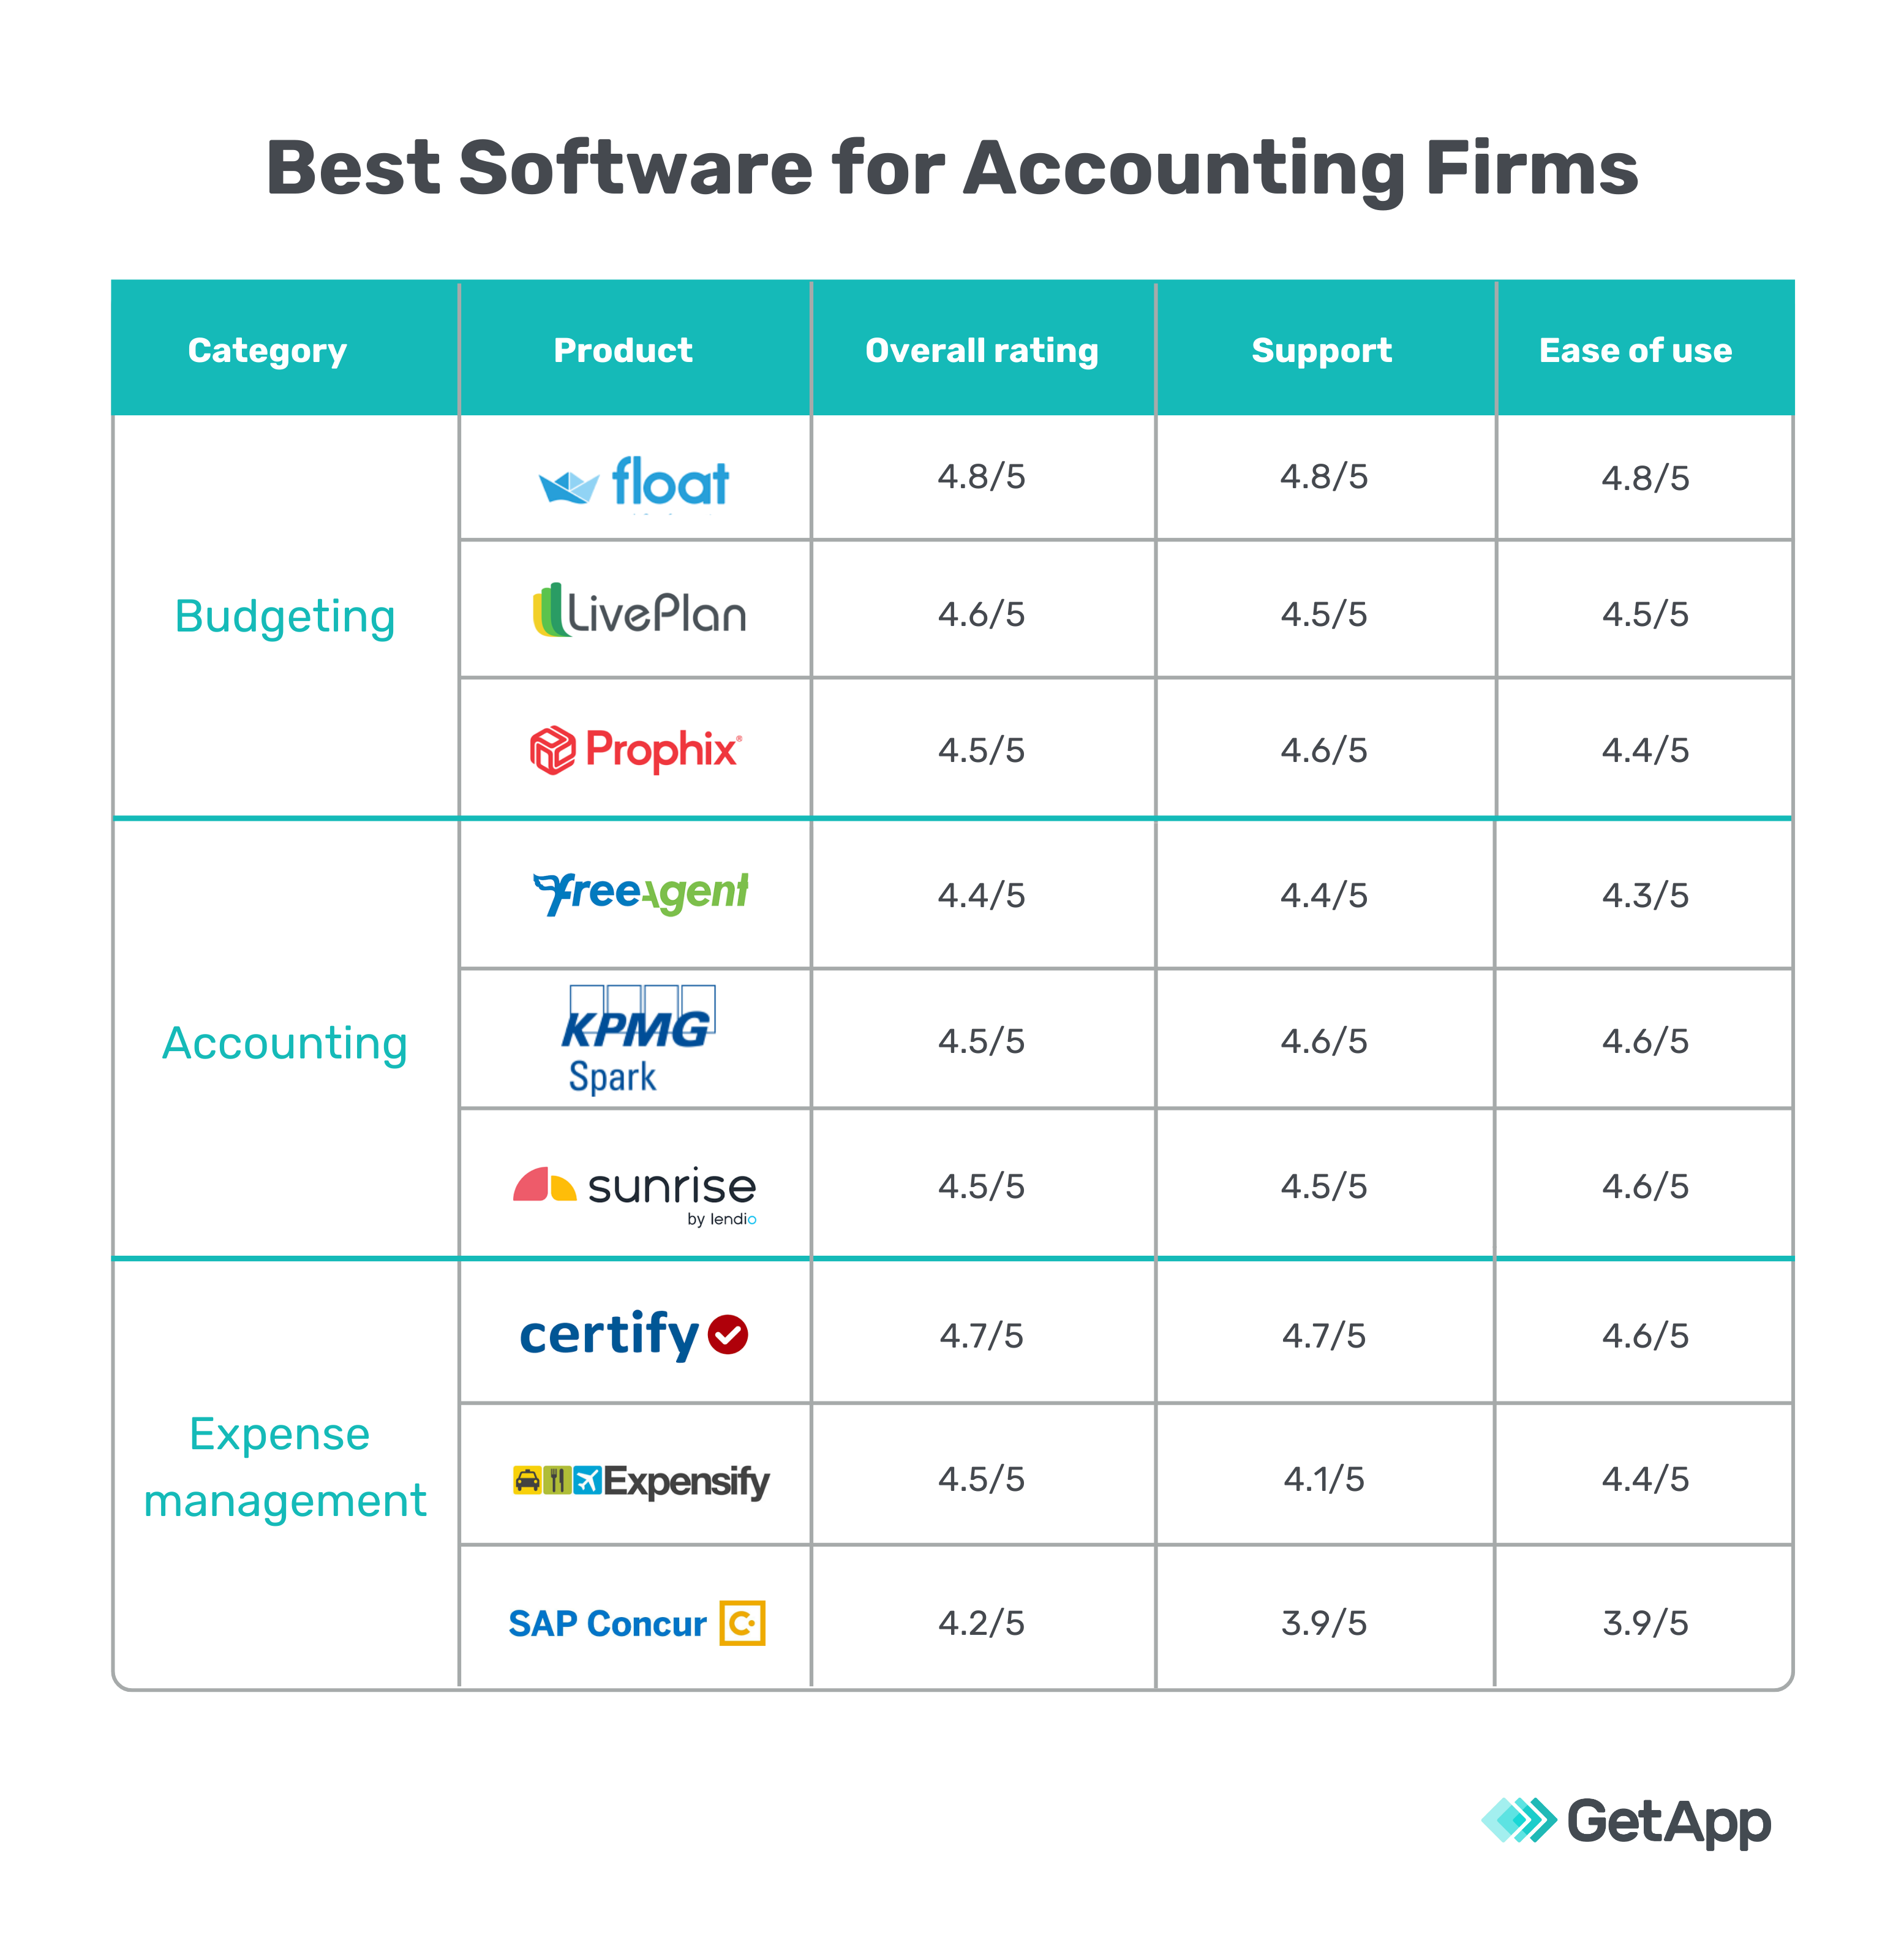 Best software for accounting firms